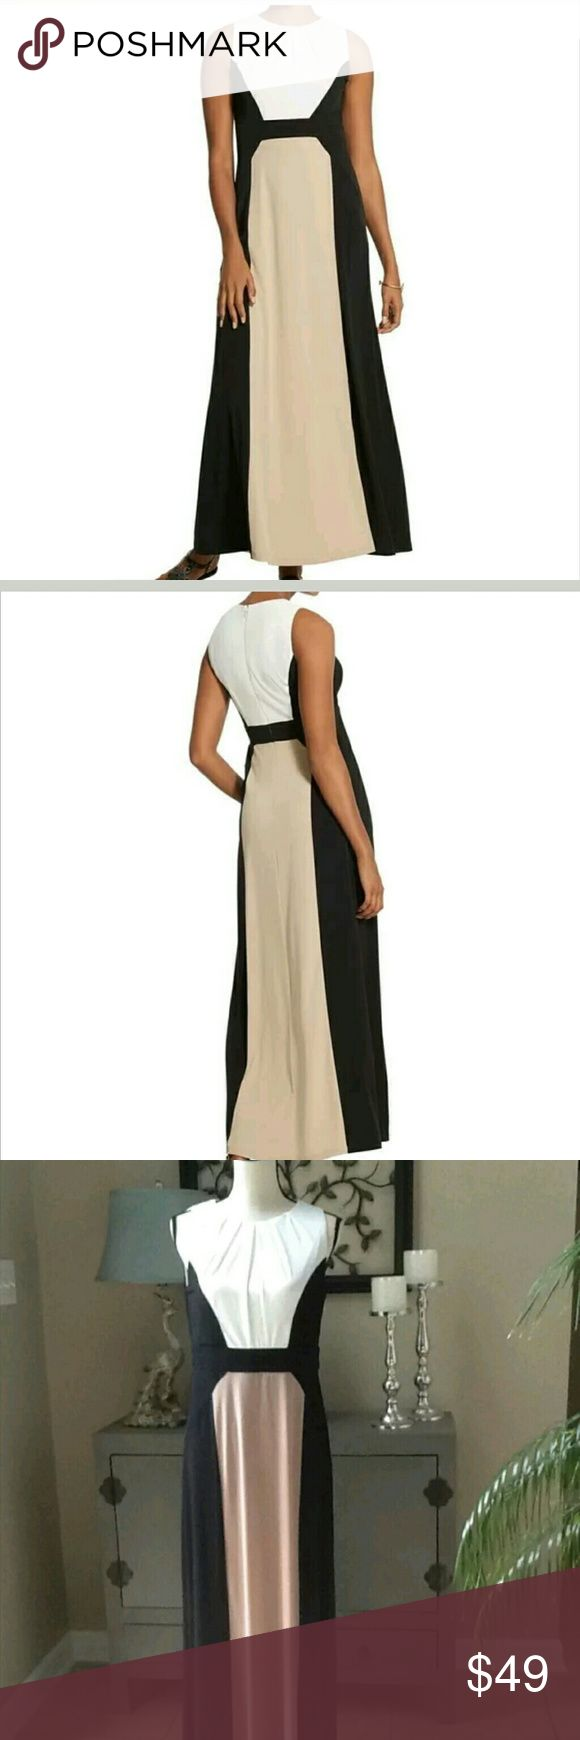 """Chico's Colorblock Column Dress Make a date to wear this colorblock column maxi dress!! It's perfect for a special occasion, with pleated details to accentuate the neckline and a colorblocked design that's slimming.Back zip. Unlined. Length {56.5"""".} Polyester. Lovely combination of black, beige (tan) and white. This is a Chico's size 0, which corresponds to a small in regular sizes. NWT - originally $139. Chico's Dresses Maxi"""